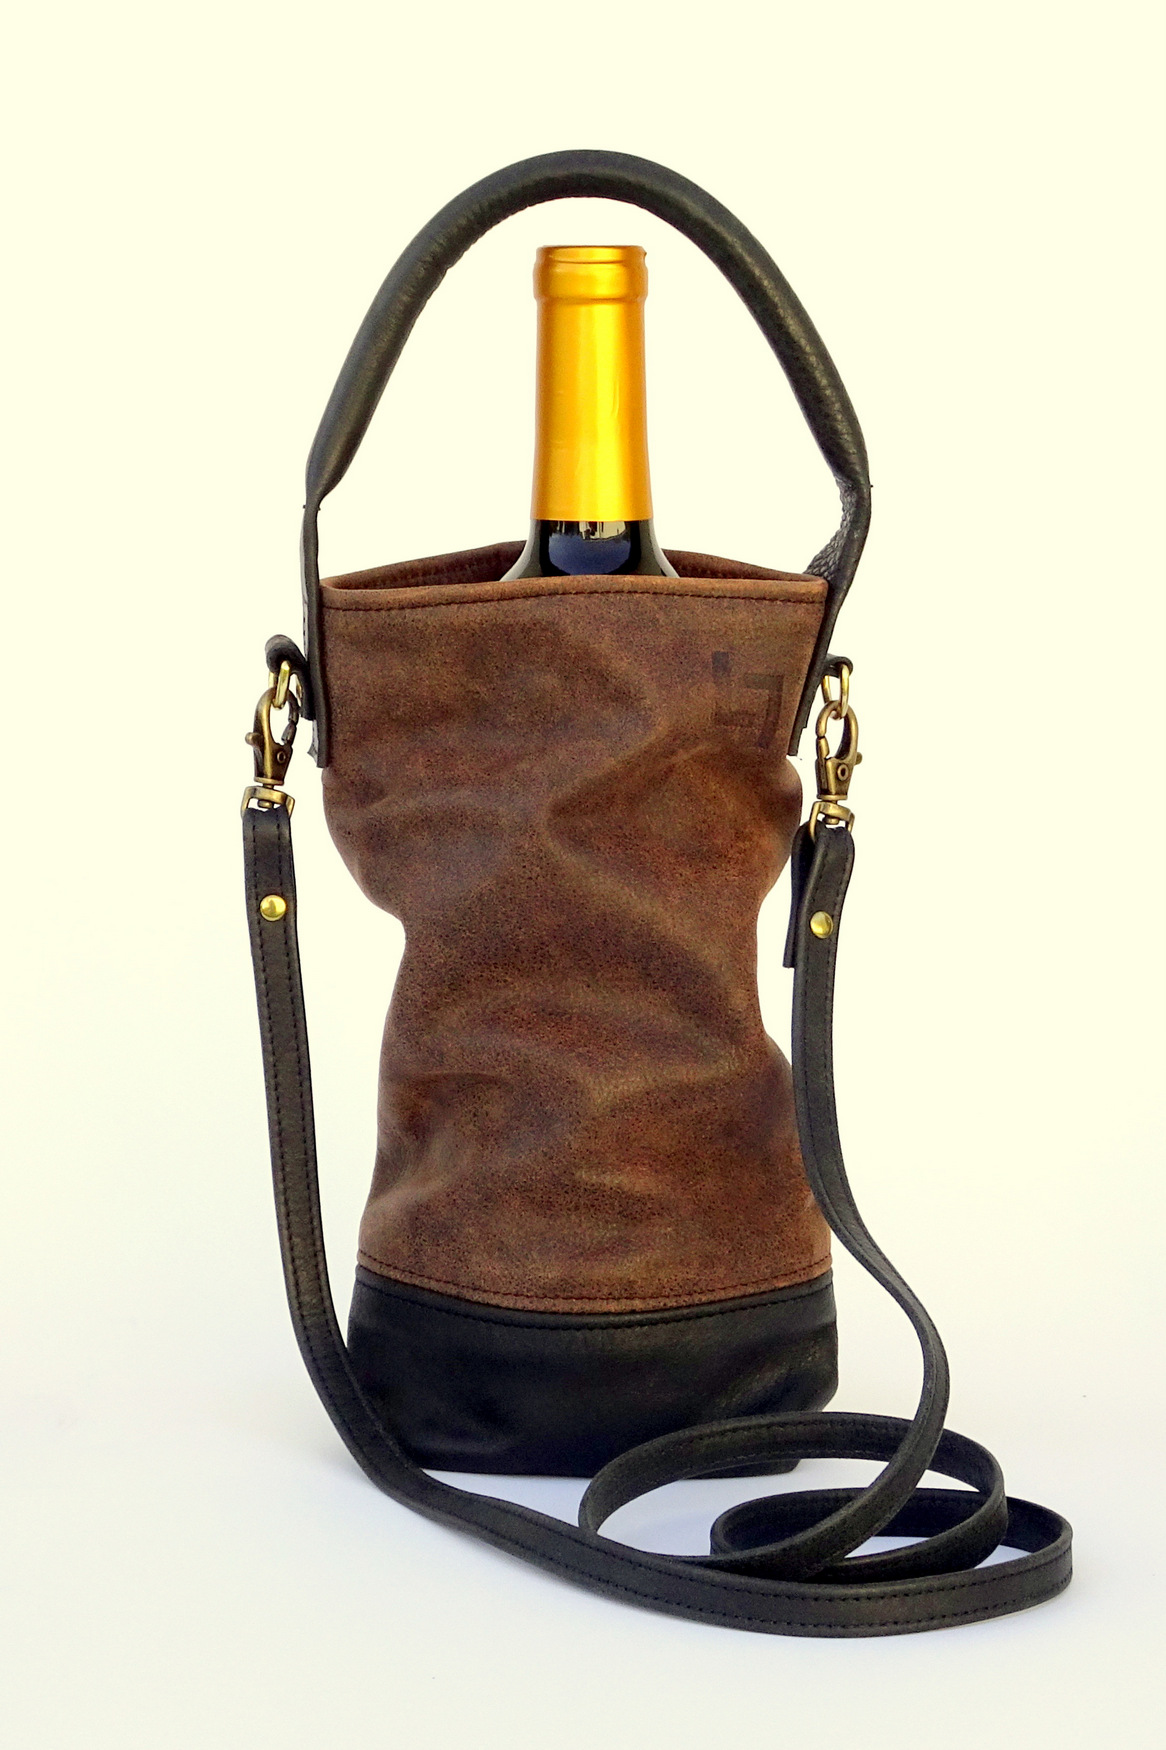 5-Handcrafted Leather Wine Tote Bags, LaPlace Leather, Tennessee-004.JPG